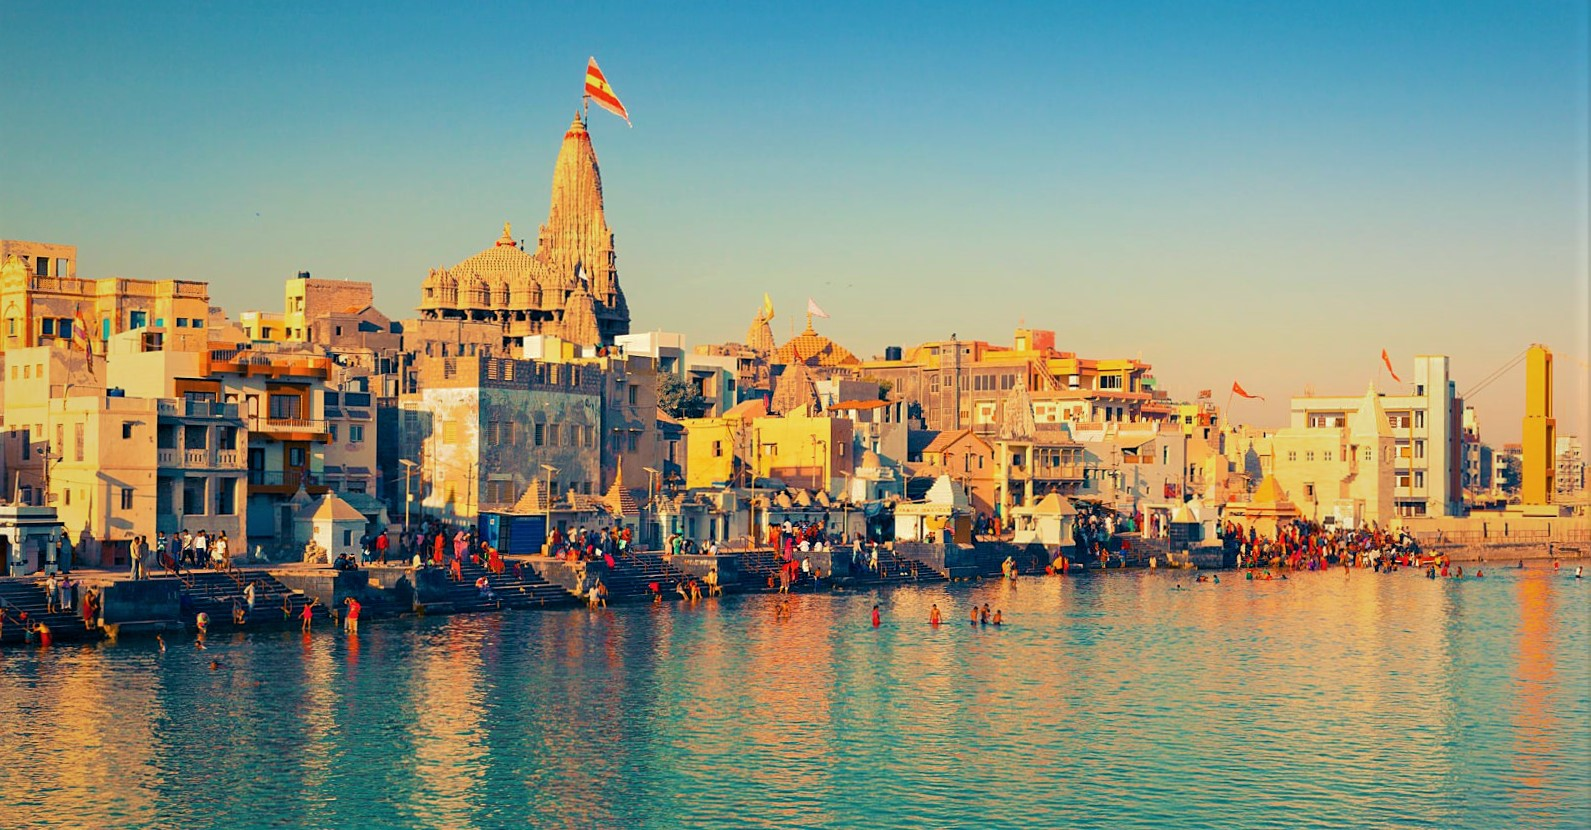 Evening at Dwarka Temple